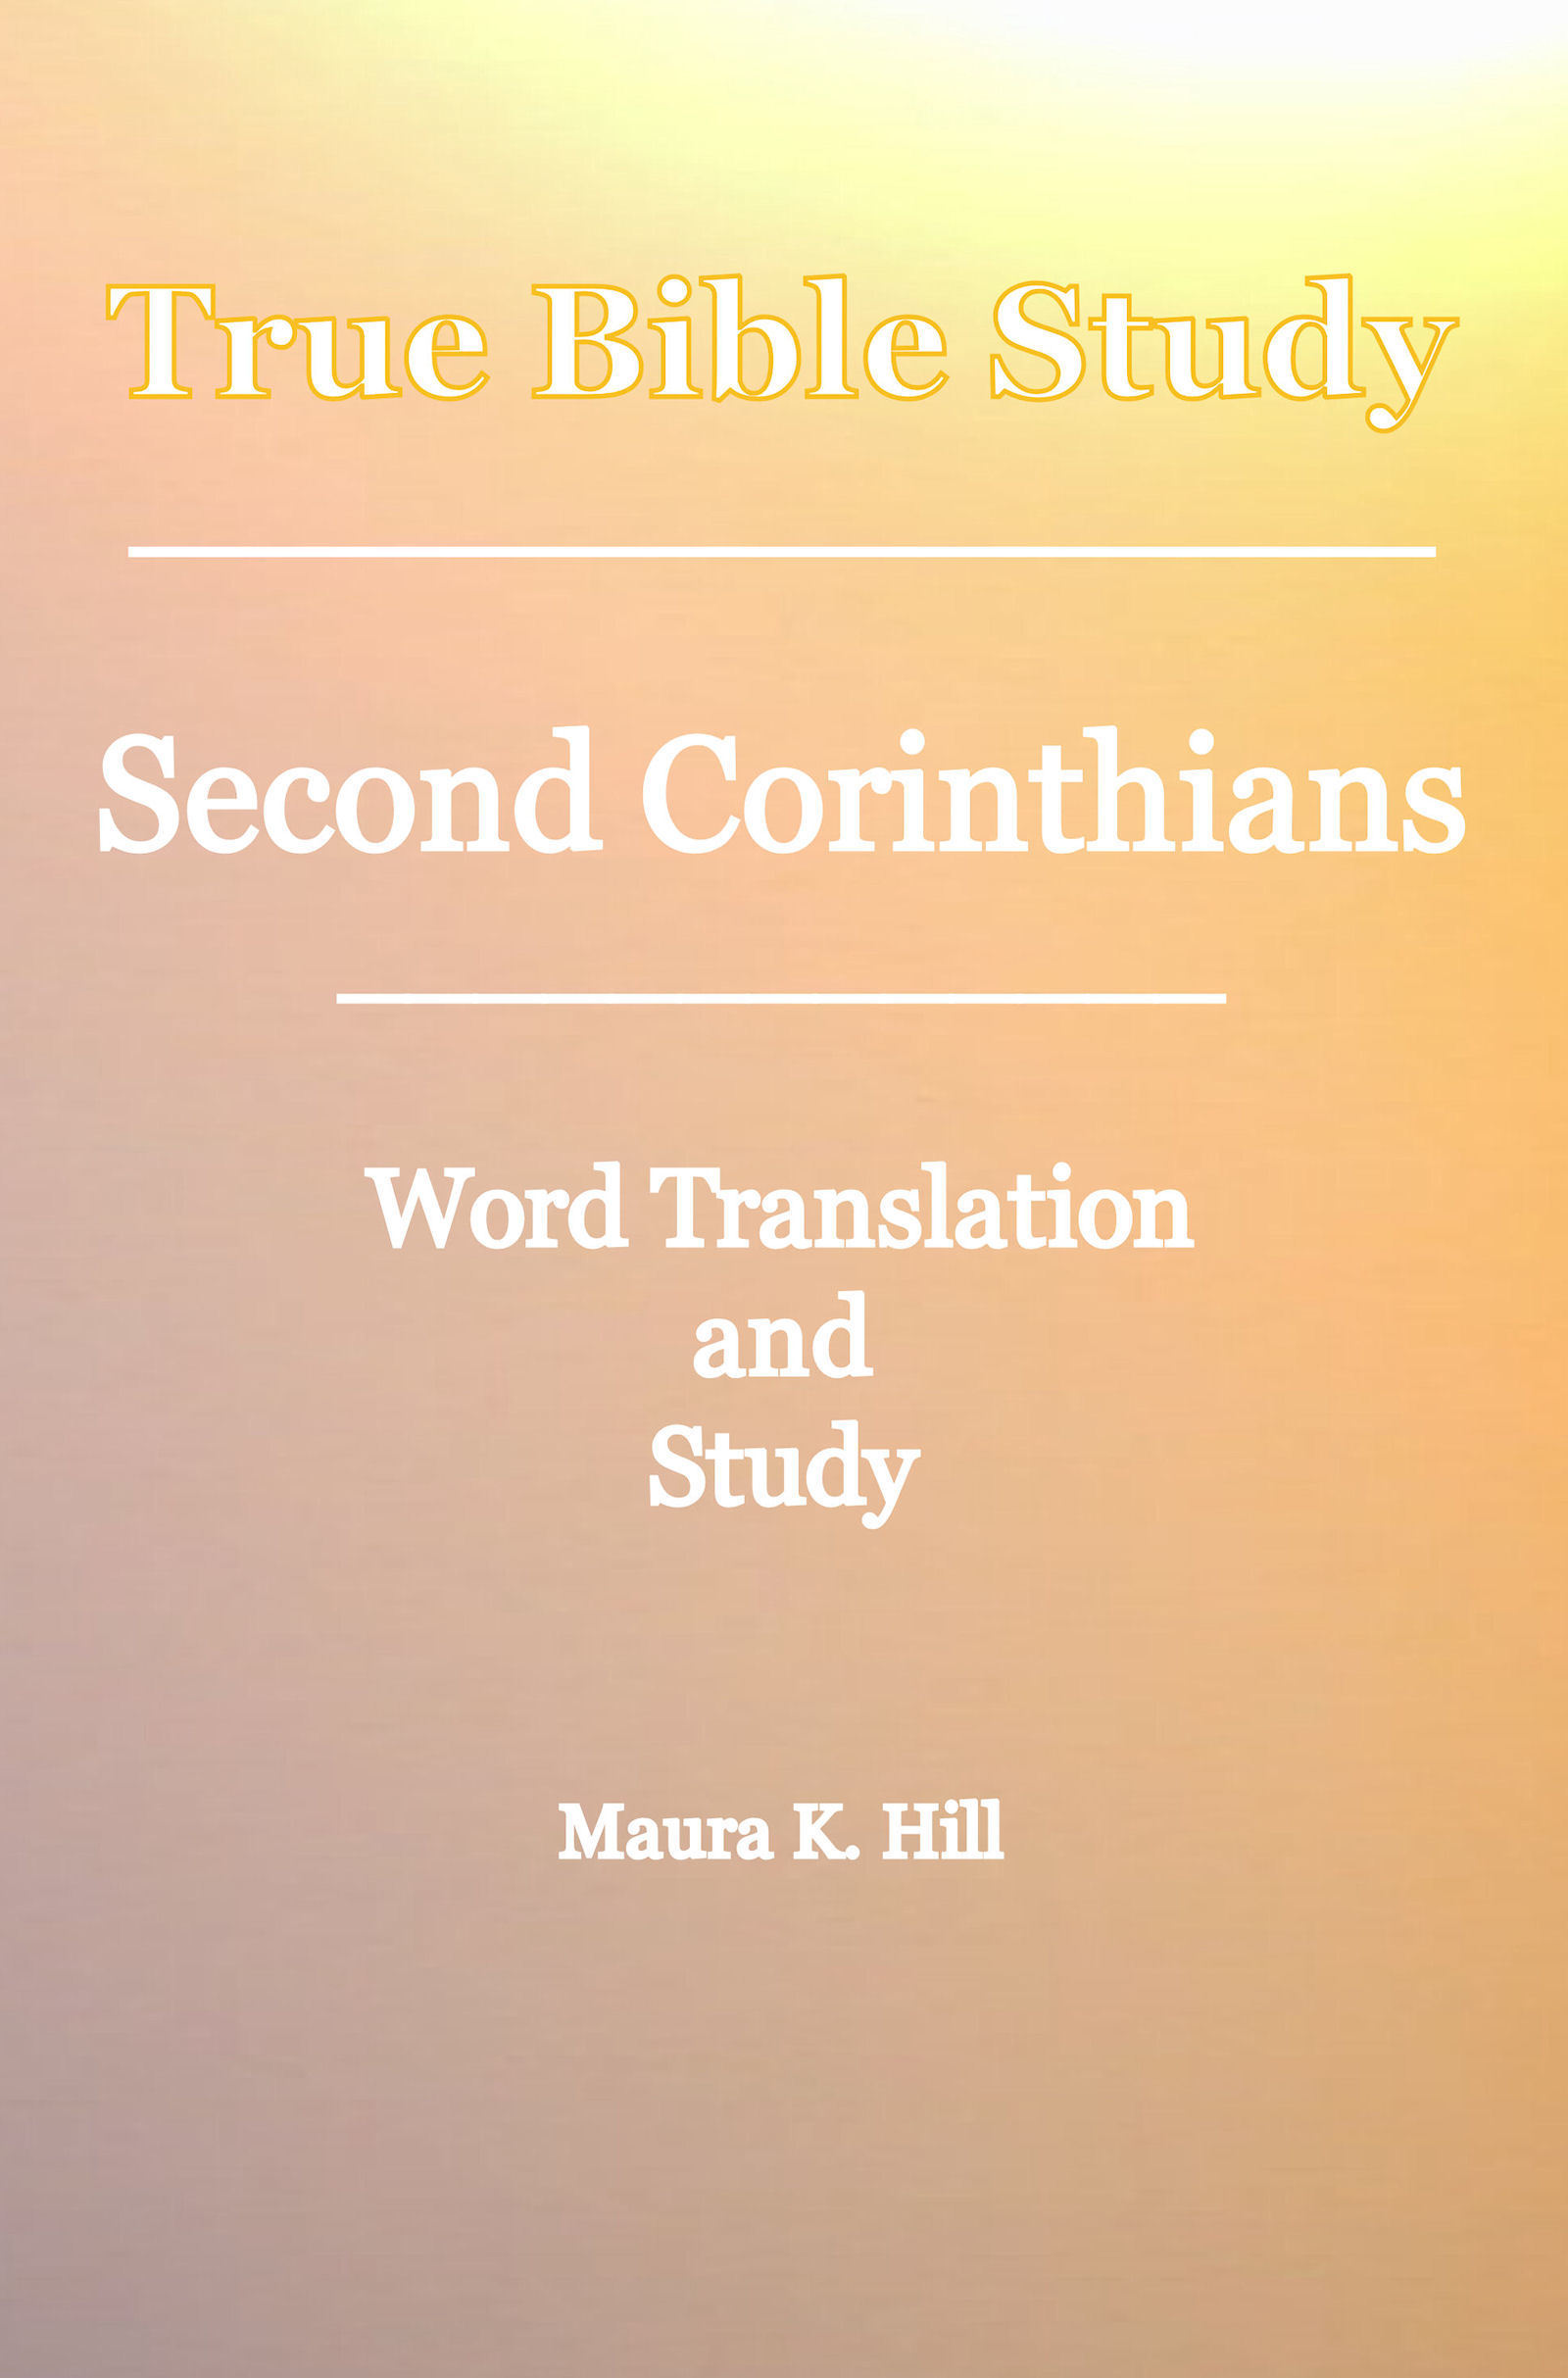 True Bible Study: Second Corinthians Maura Hill